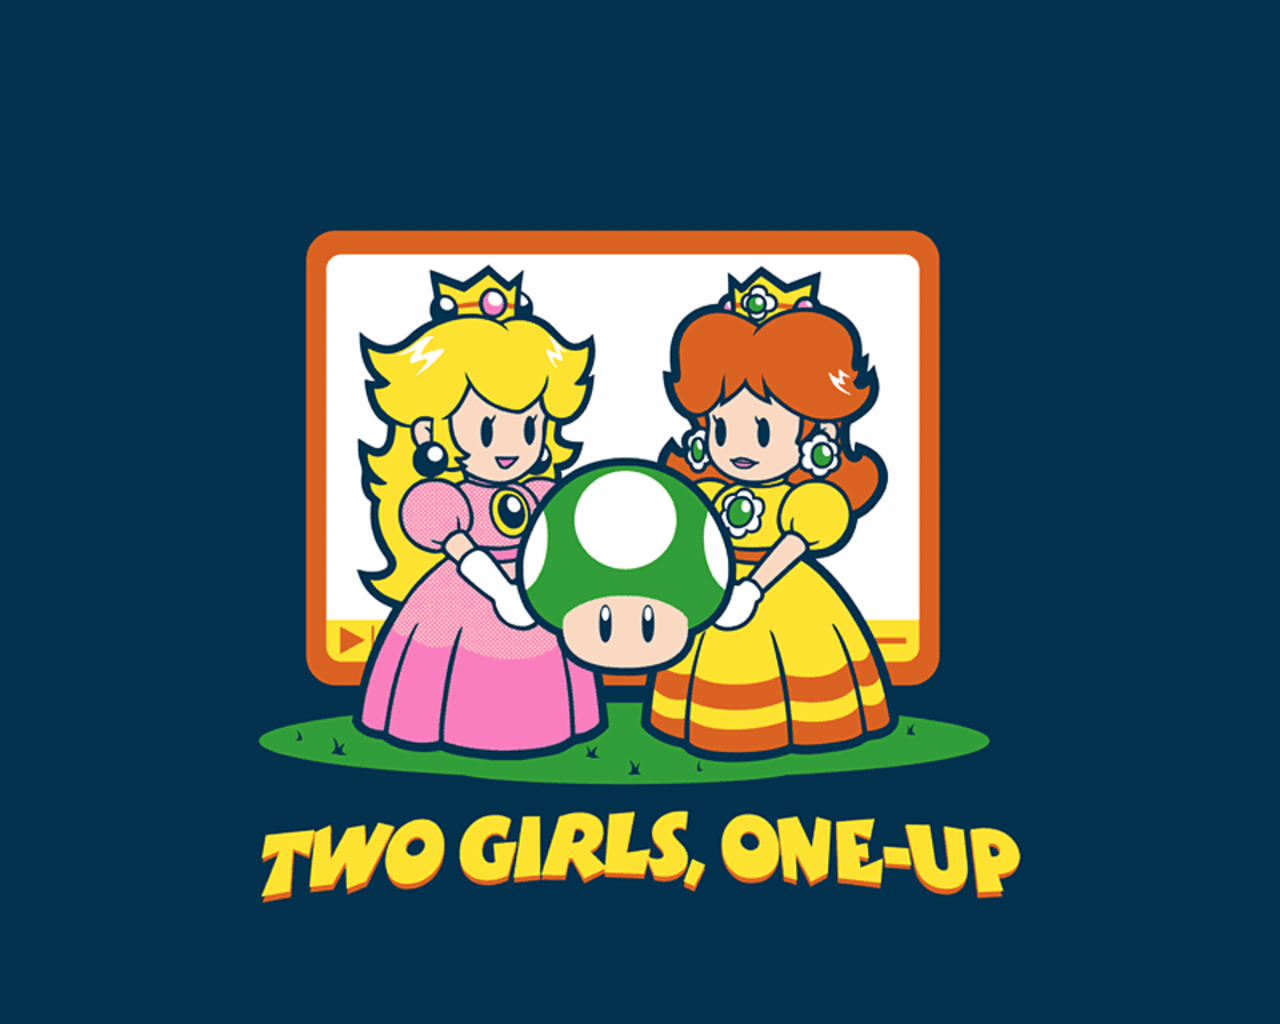 Princess Peach & Daisy